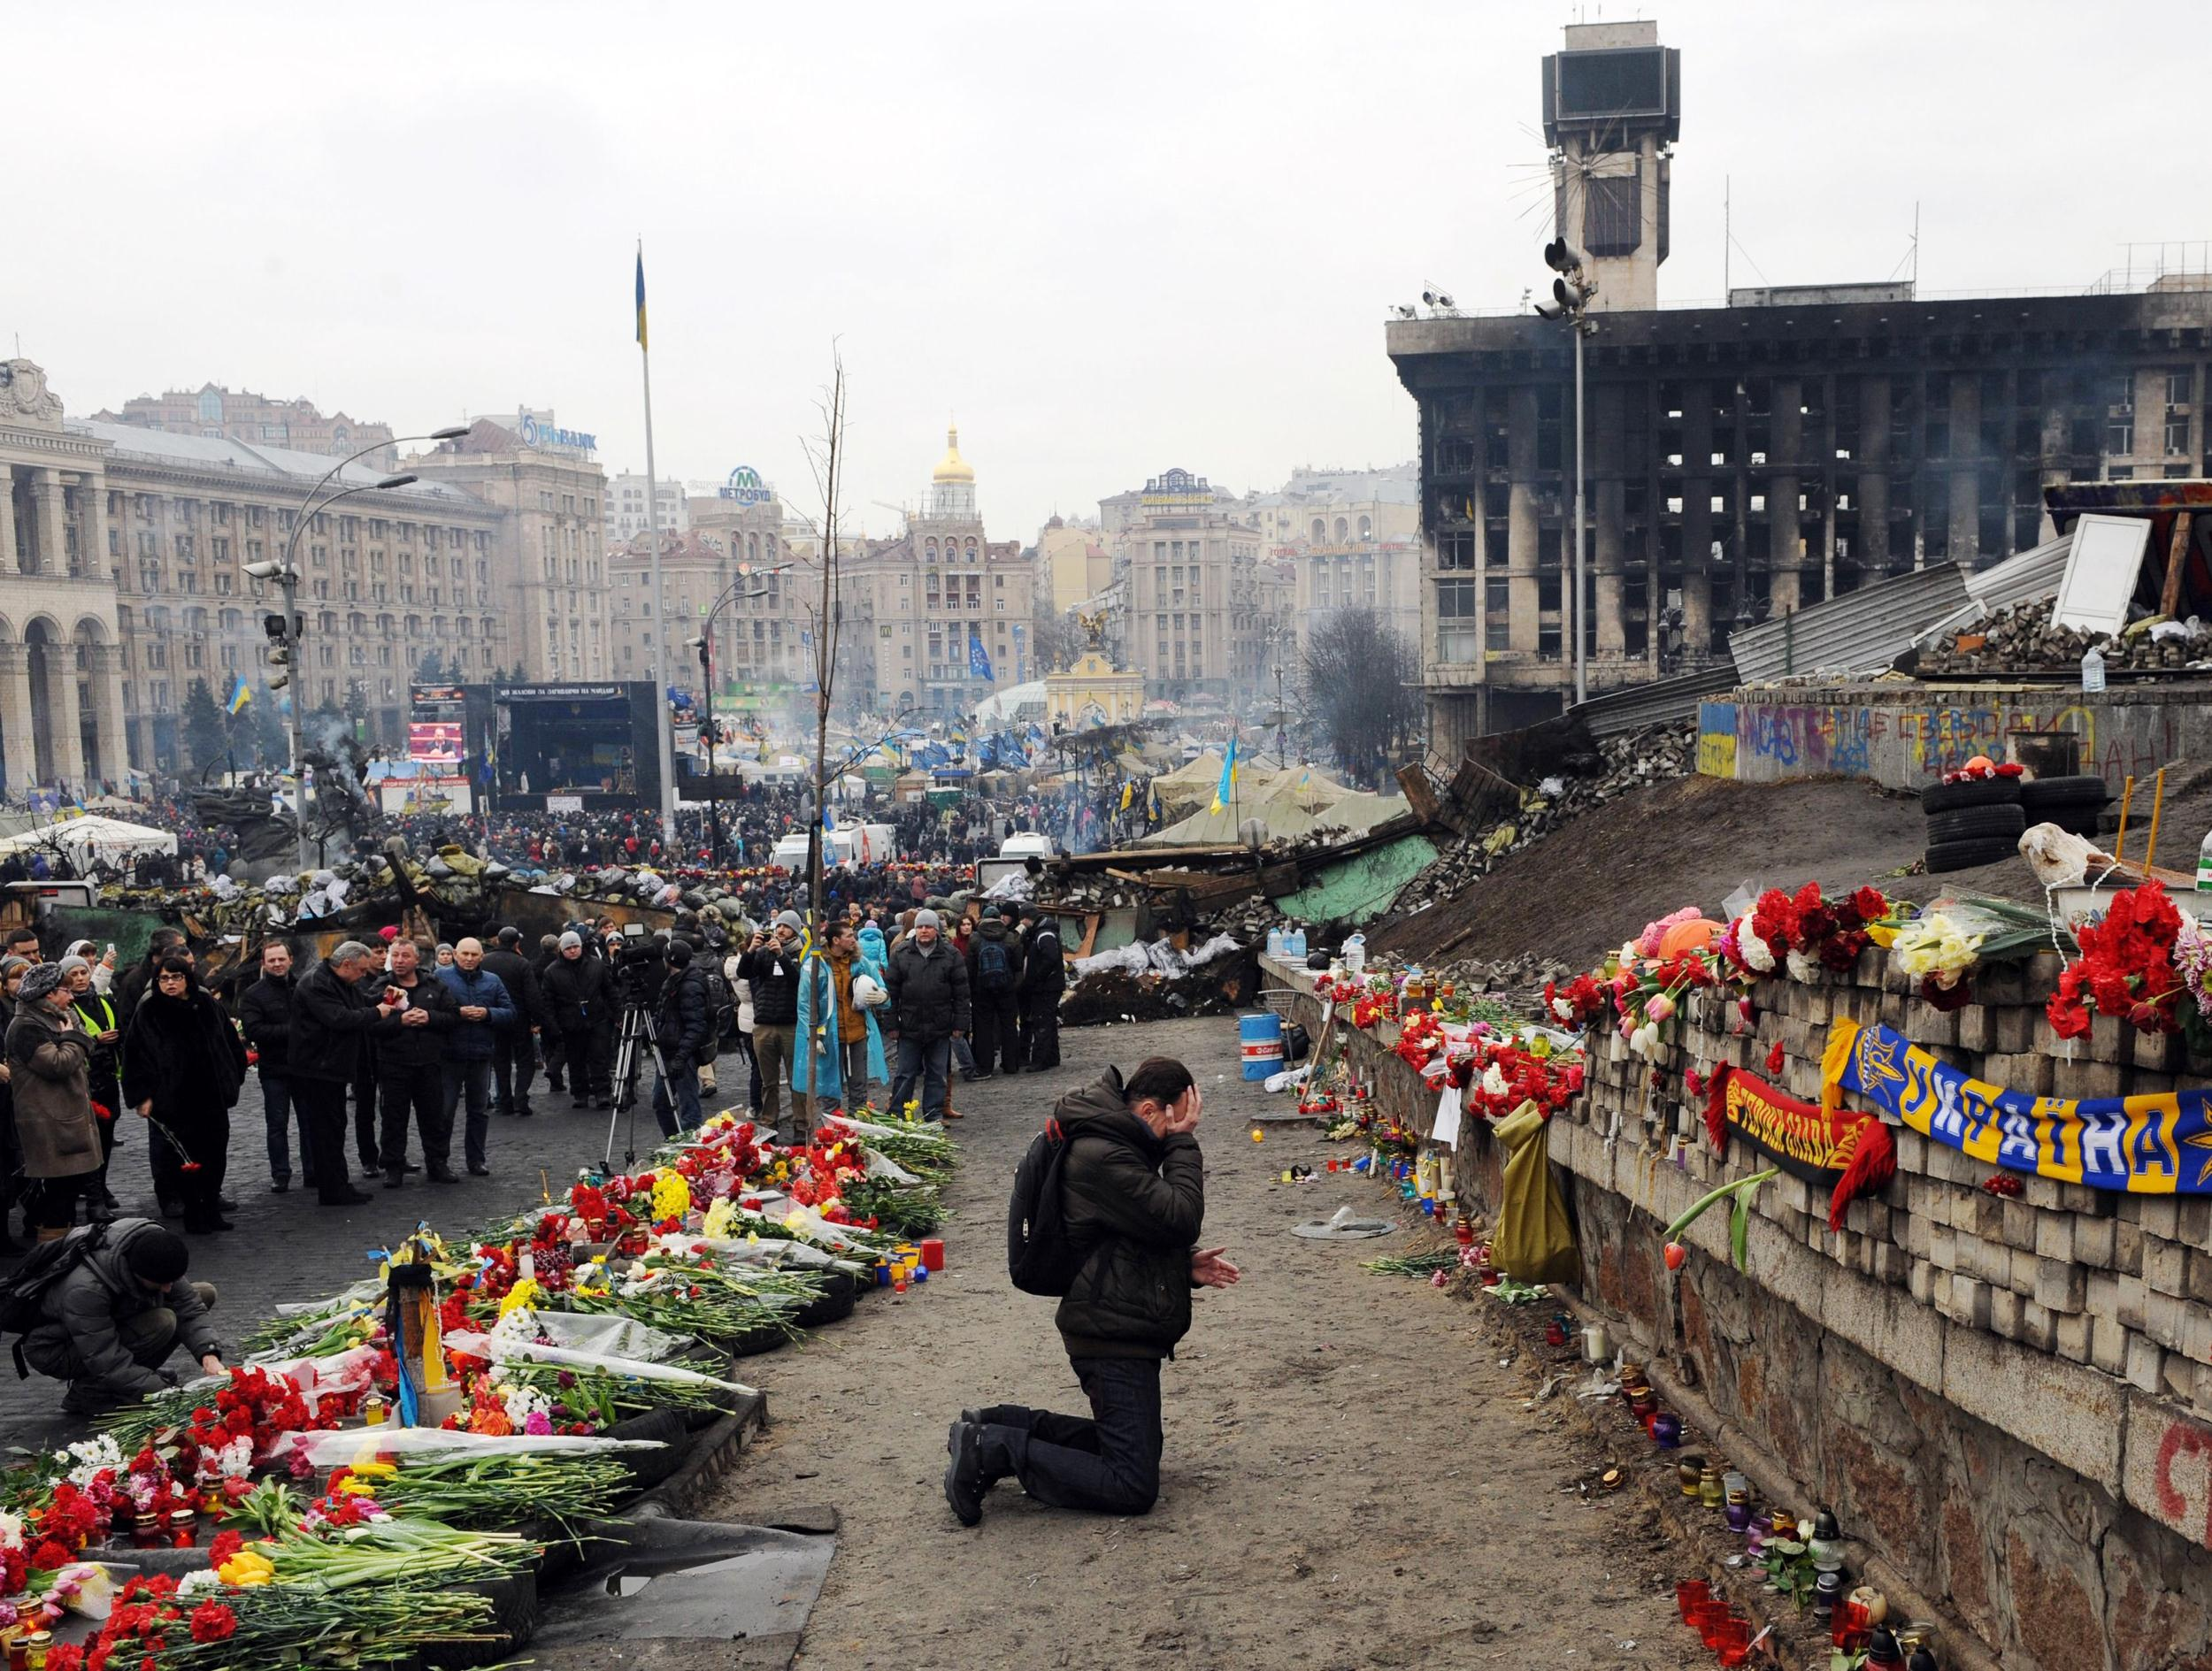 Image: A man cries at a memorial to the anti-government protesters killed in the past weeks clashes with riot police on Kiev's Independence Square on February 23, 2014.